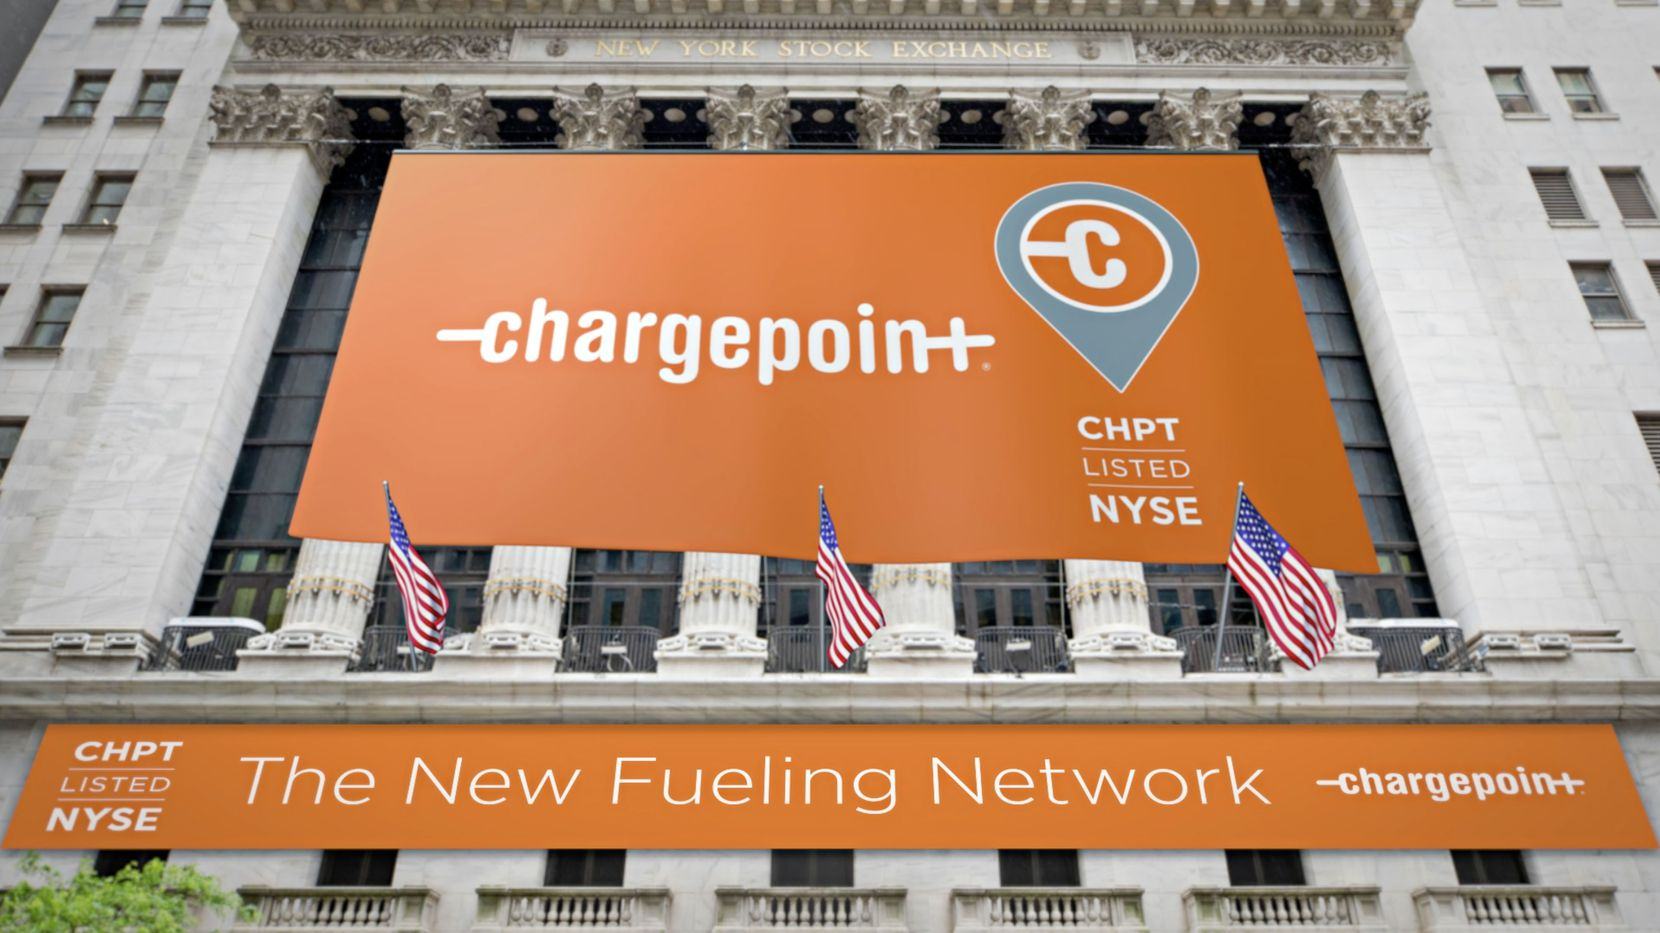 EV charging network company ChargePoint went public Monday, March 1, on the New York Stock Exchange. The company's public listing was backed by Dallas-based Switchback Energy Acquisition Corp.